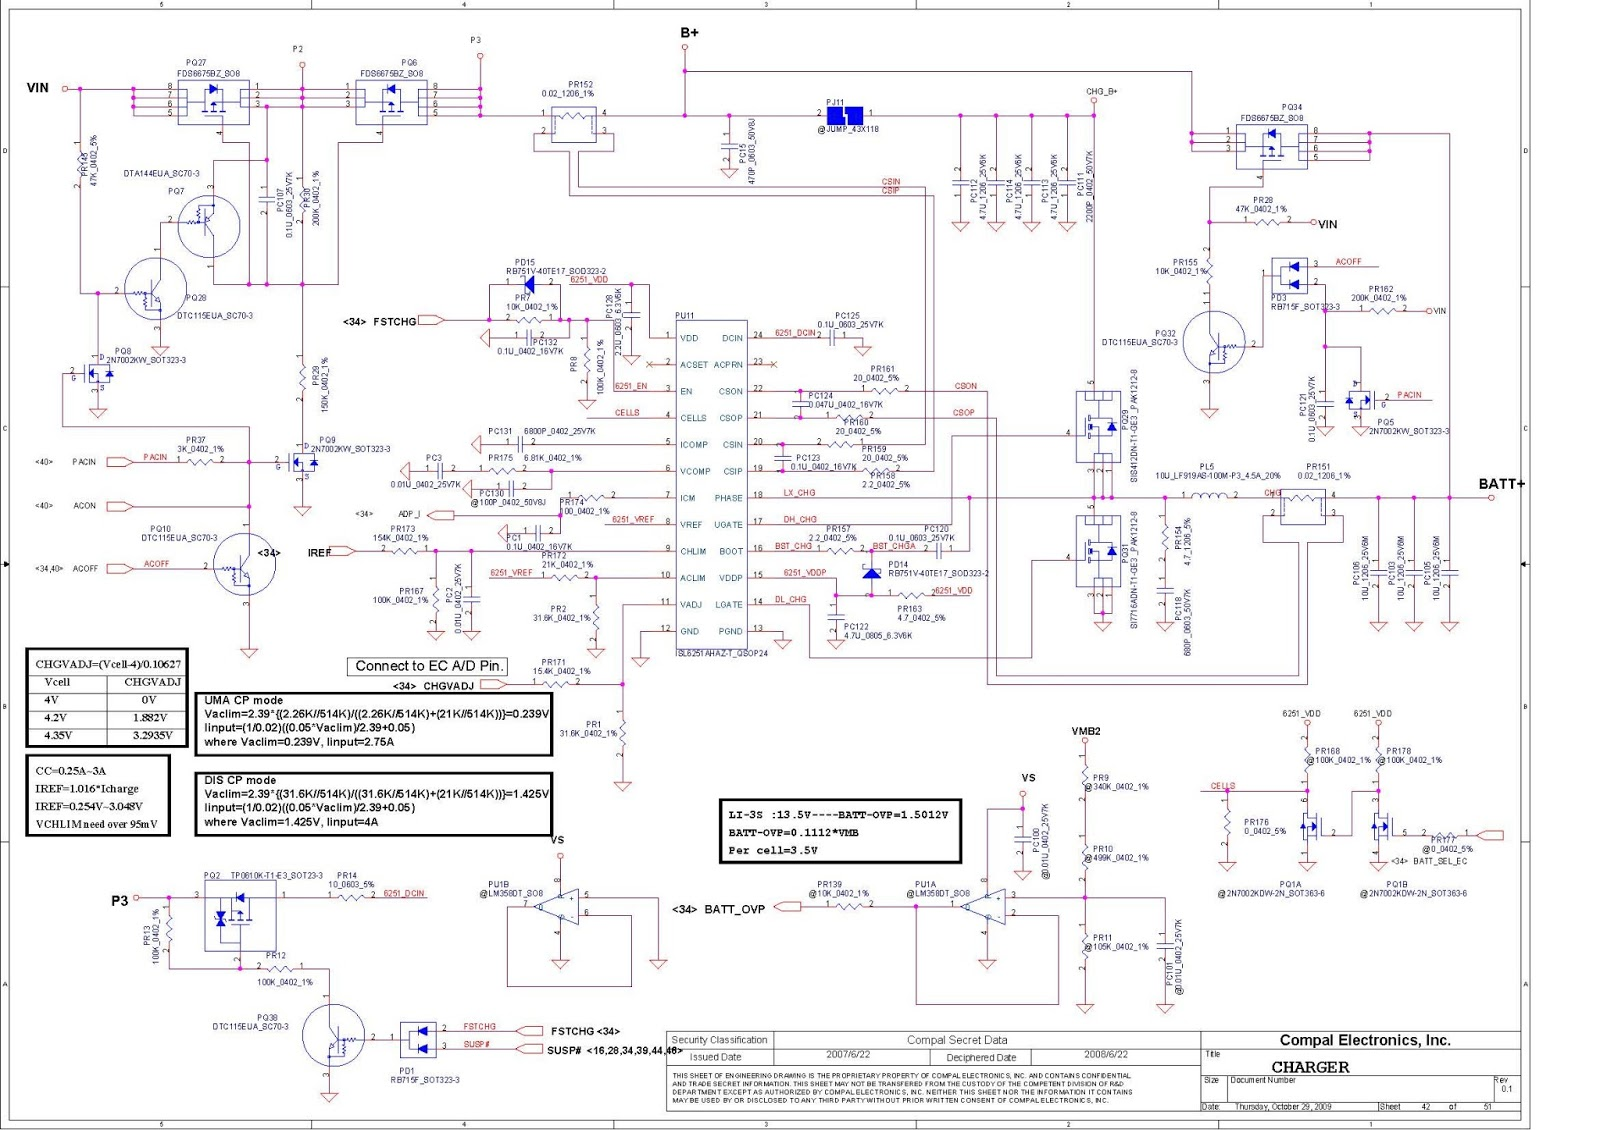 laptop lab schematics lenovo ideapad g460 la 5751p schematics rh laptoplabschematics blogspot com